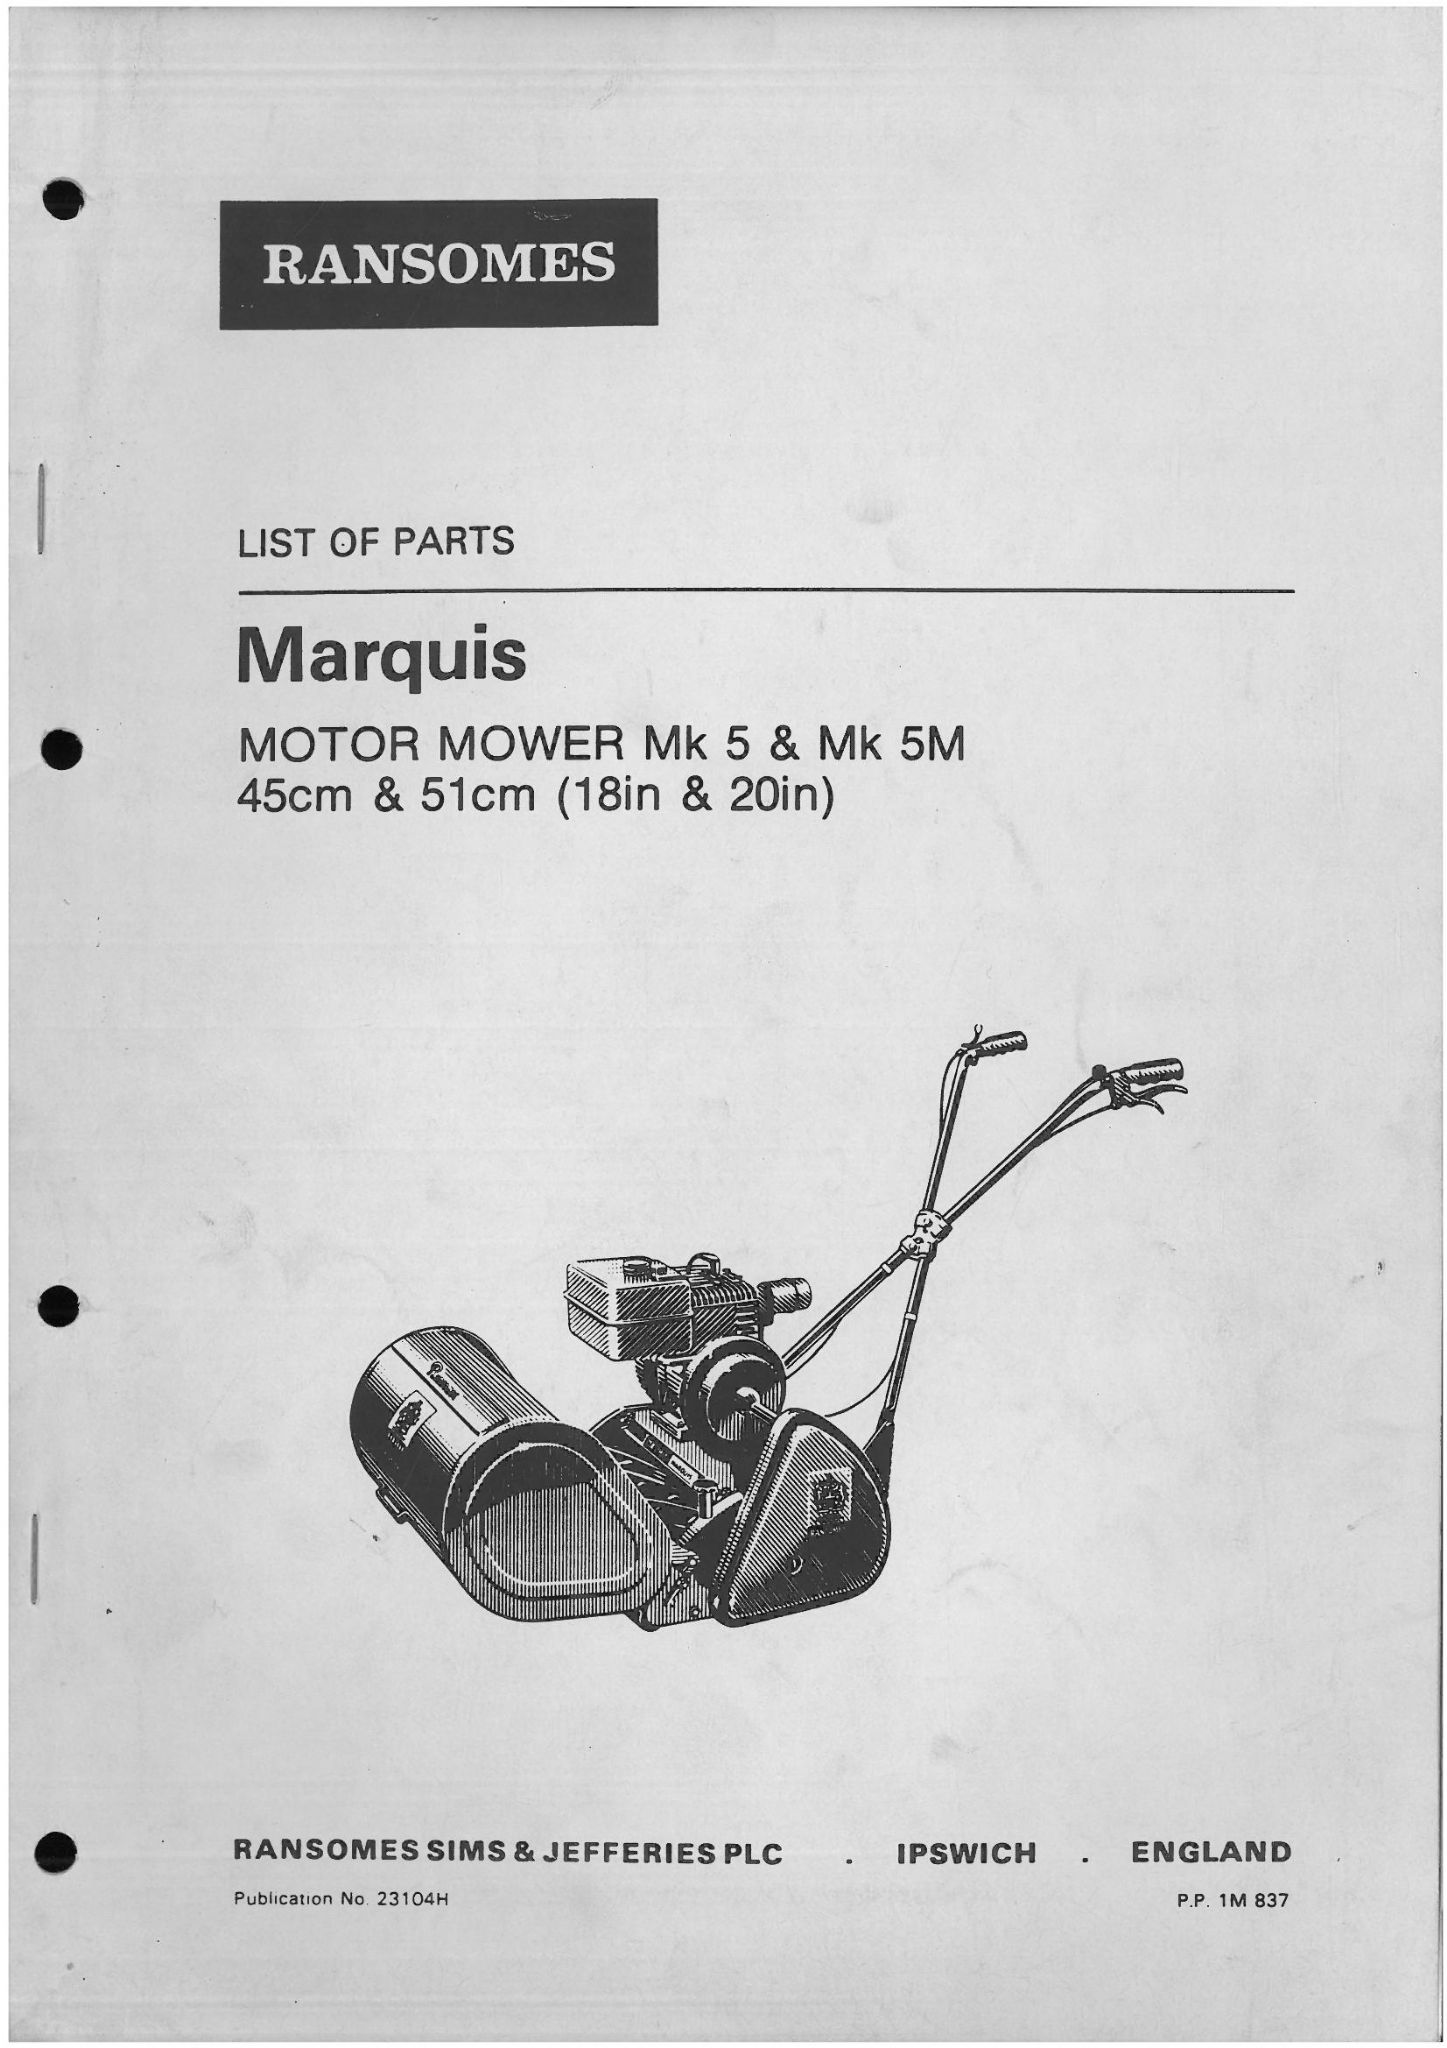 ransomes grass cutting machine marquis mk5 mk5m mower parts manual rh agrimanuals com ransomes mower parts list ransomes gang mower manual